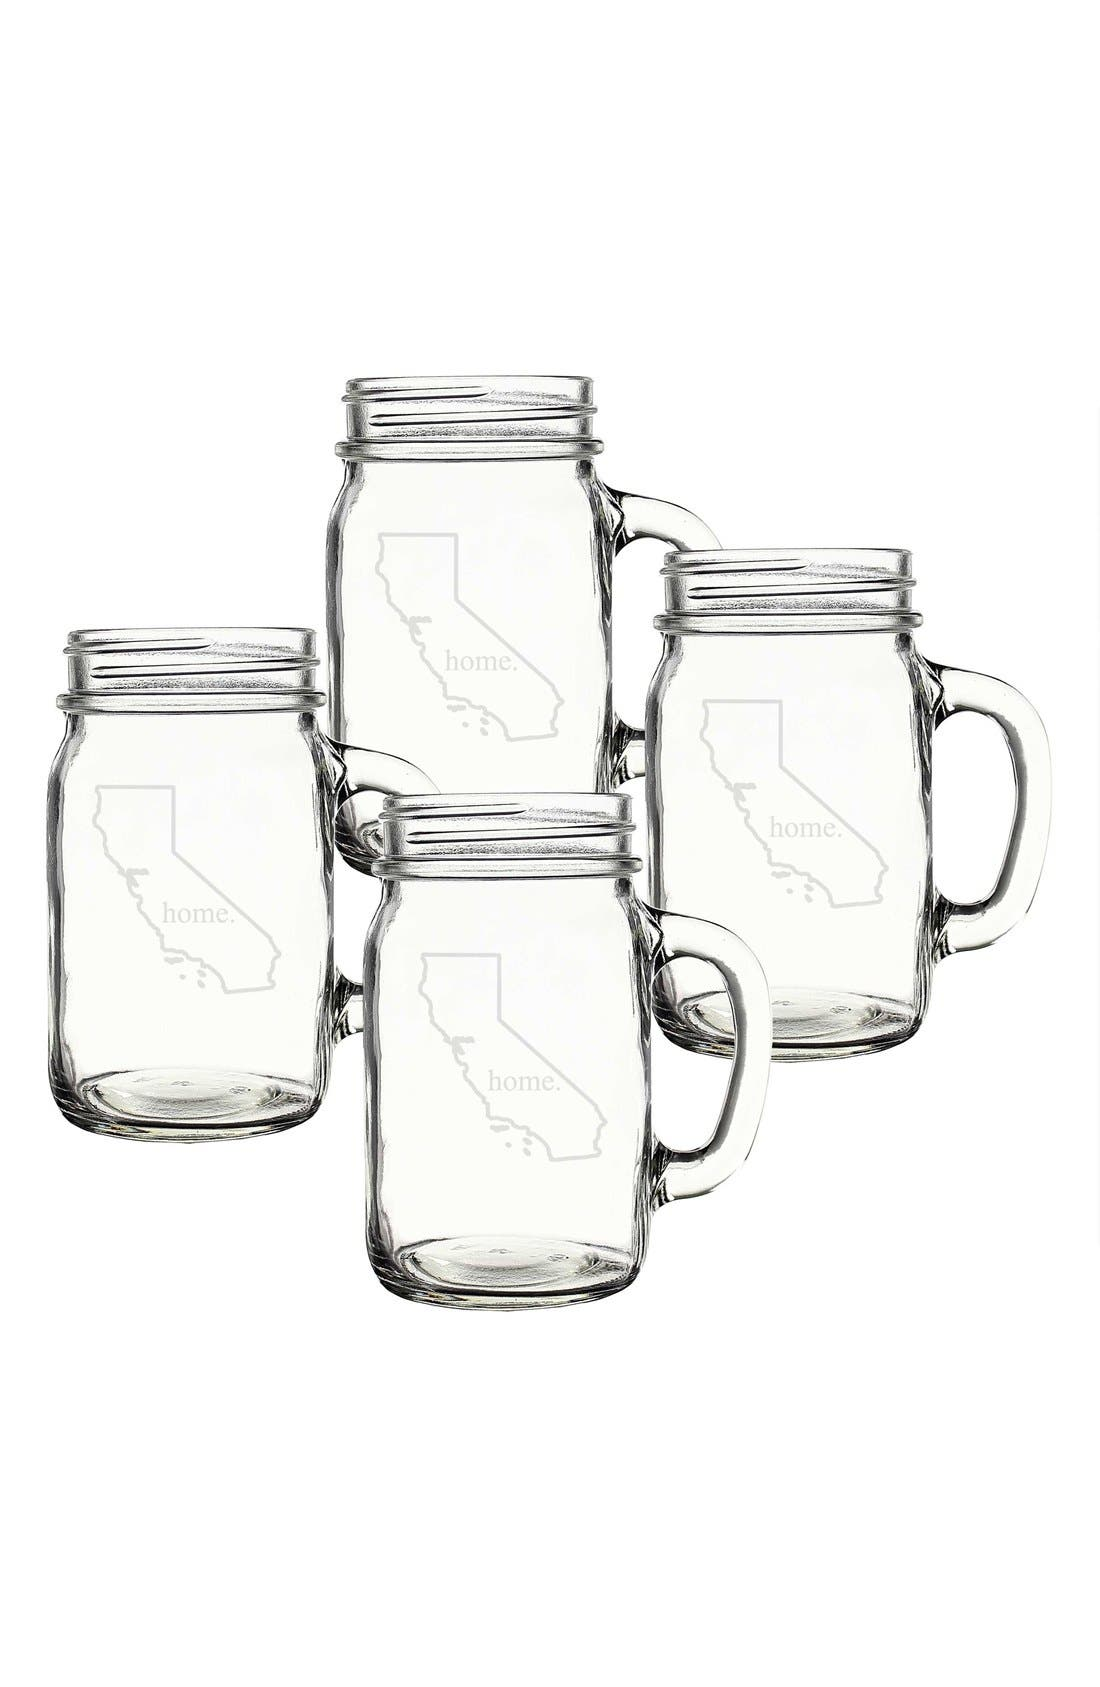 CATHY'S CONCEPTS 'Home State' Glass Drinking Jars with